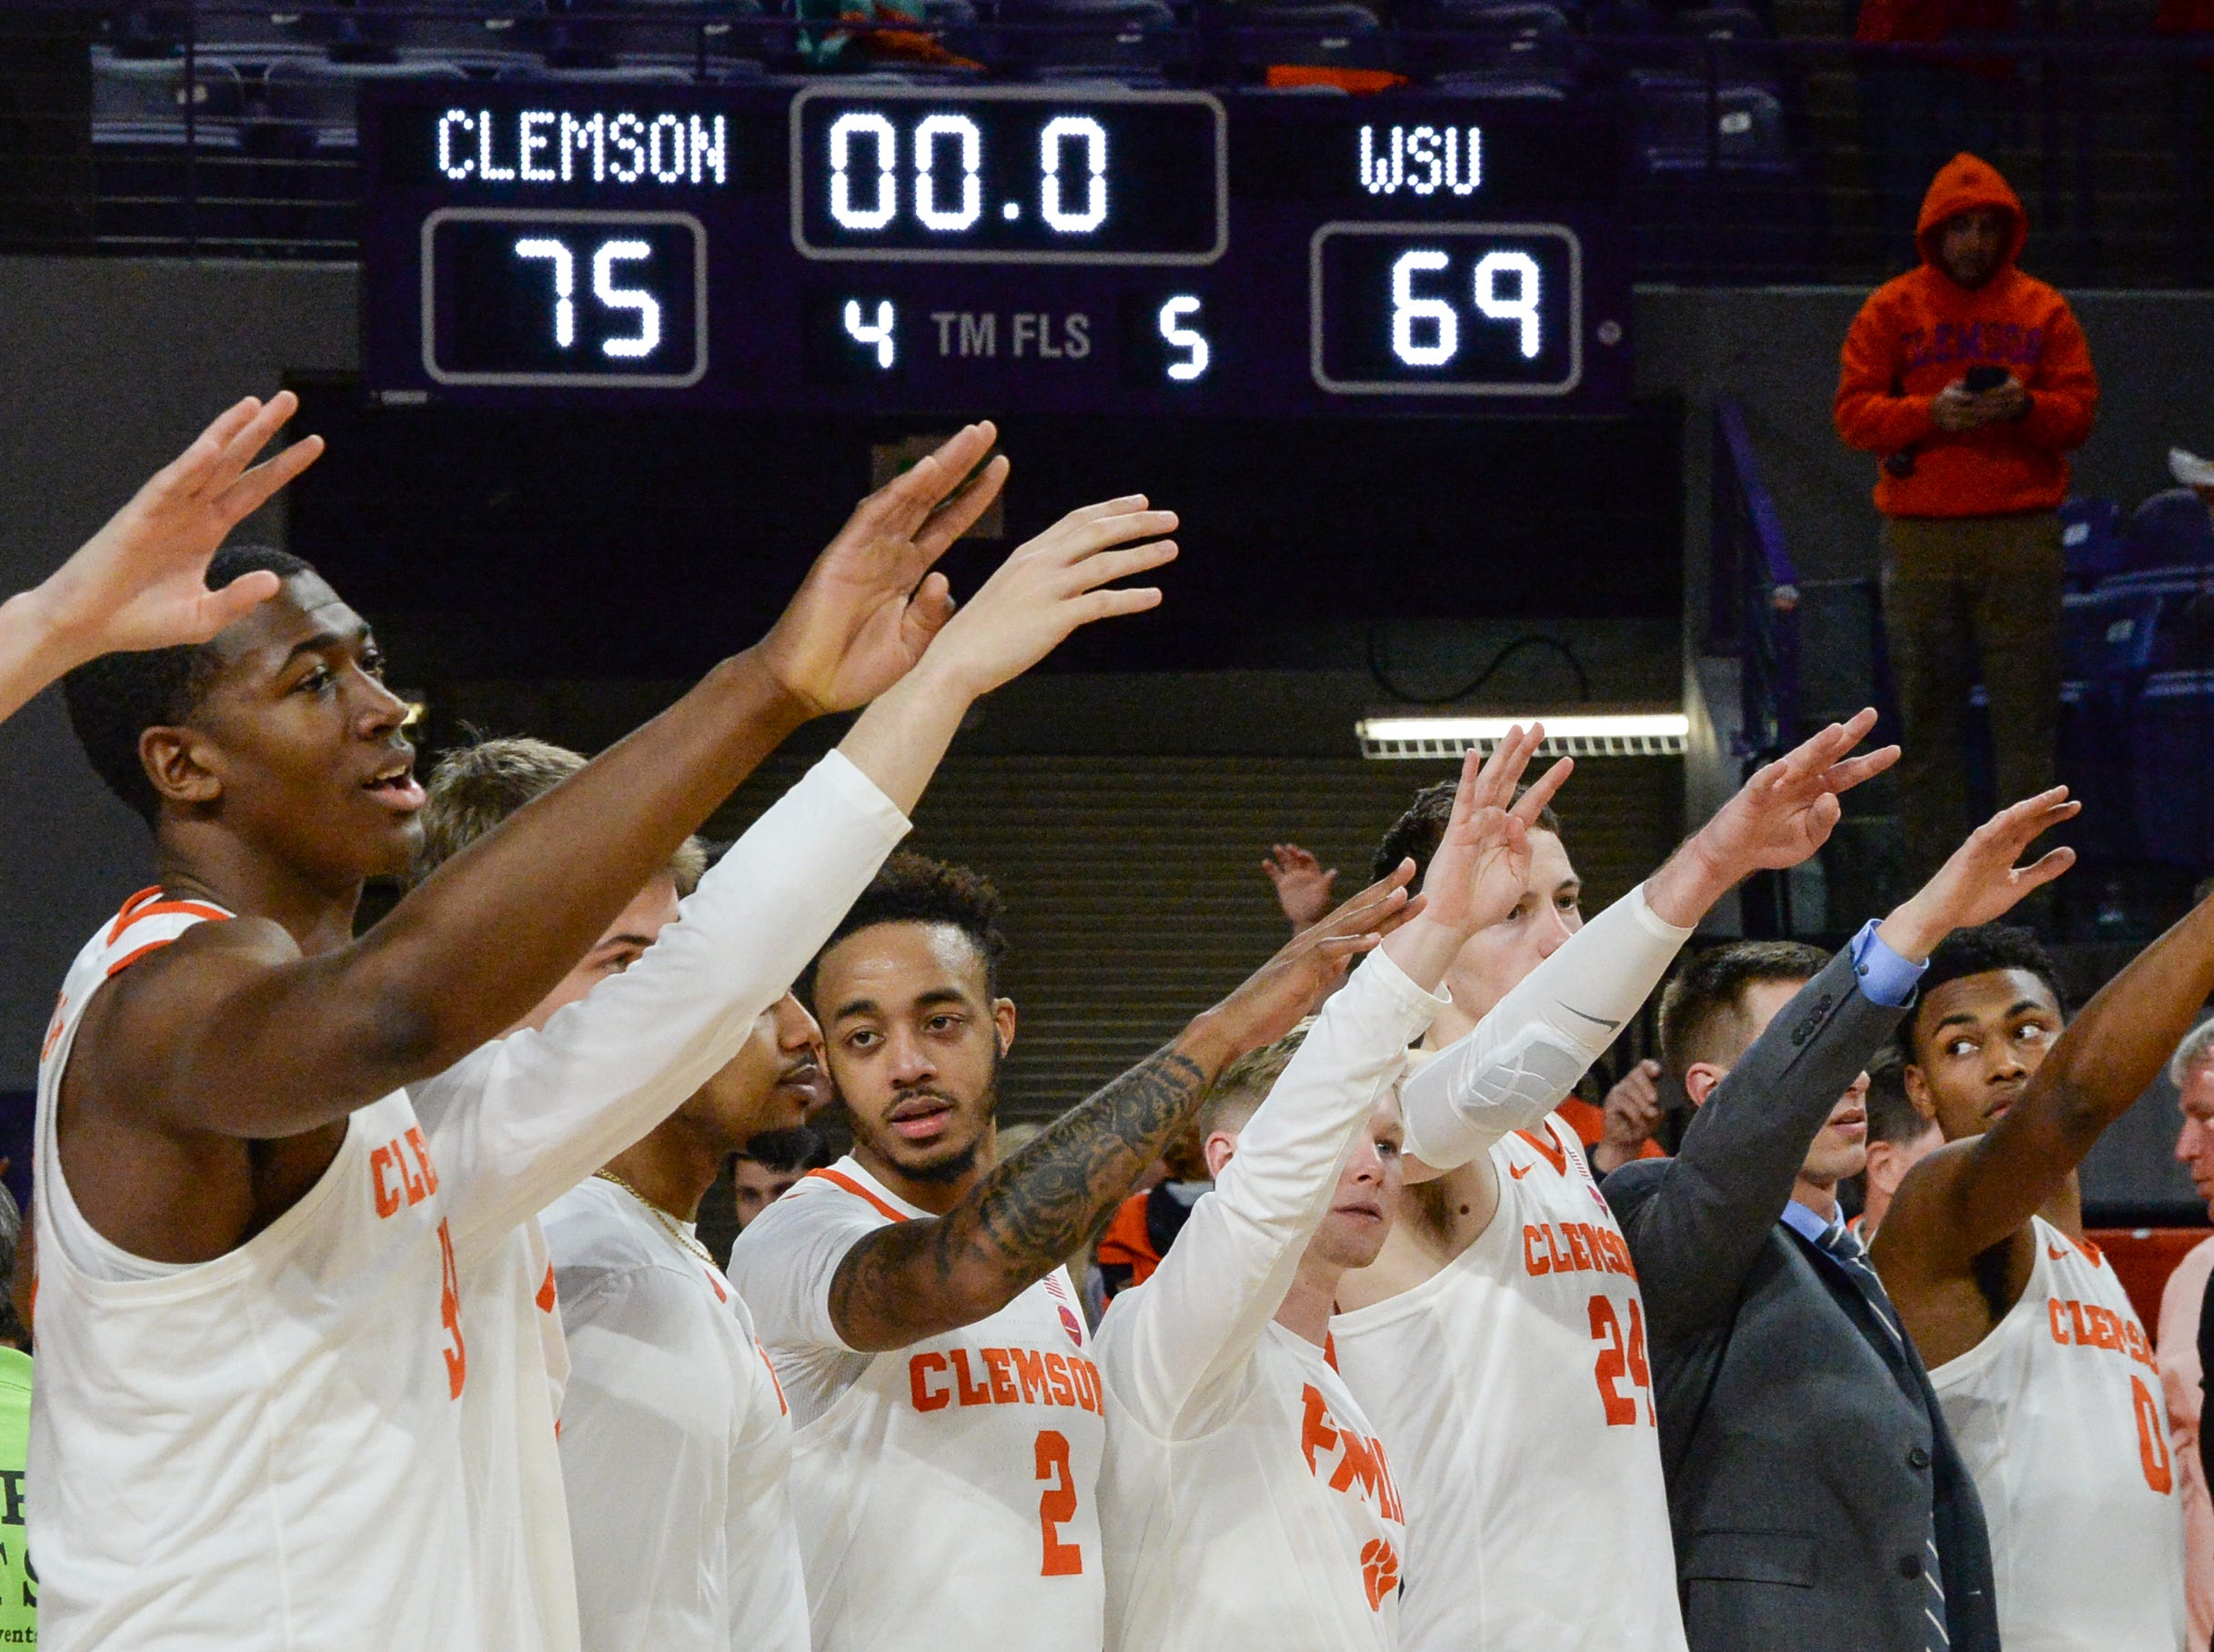 Clemson players celebrate during the second half of the NIT at Littlejohn Coliseum in Clemson Tuesday, March 19, 2019.